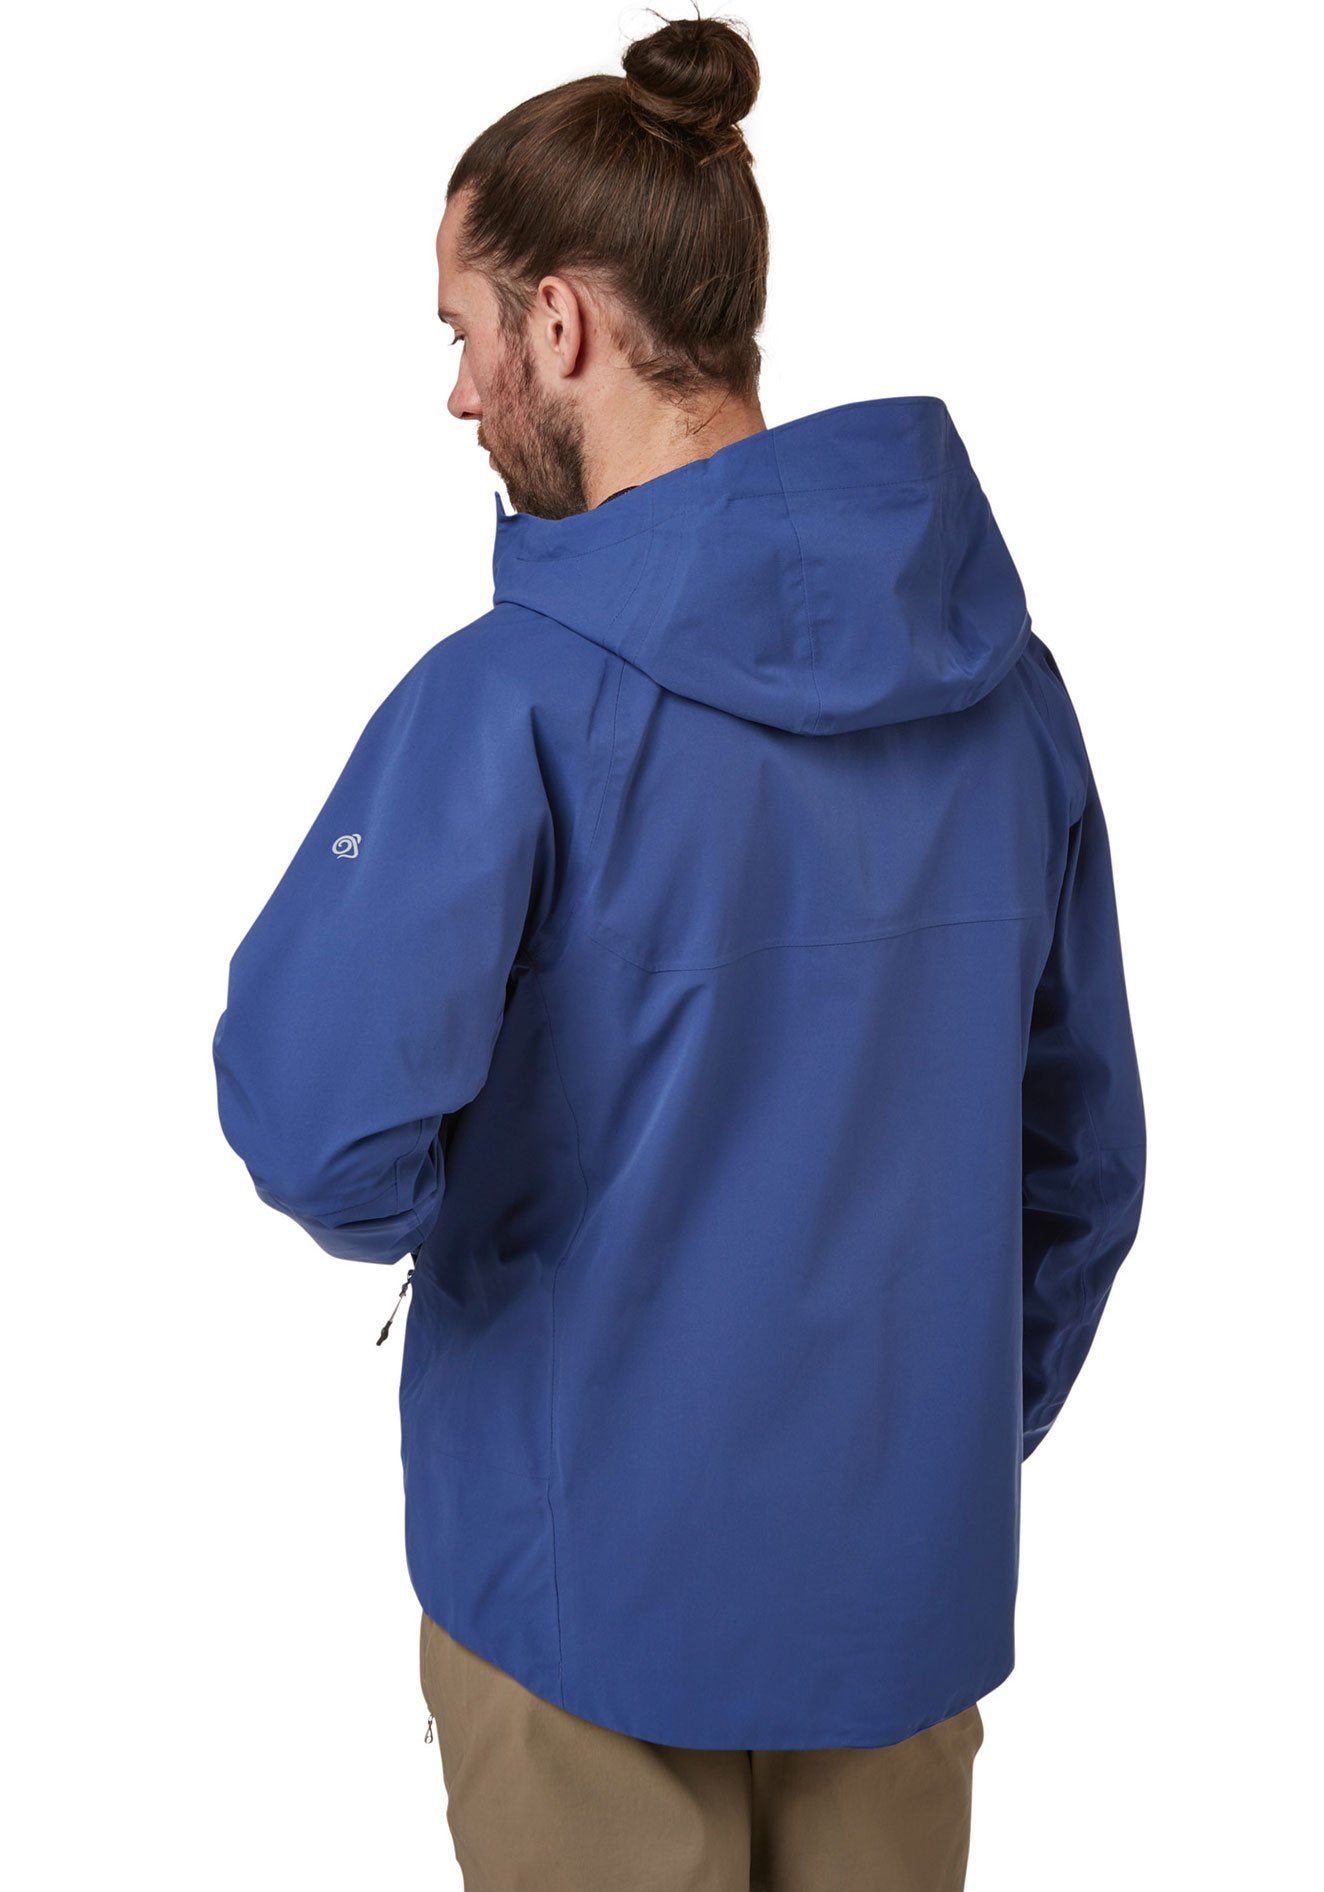 Hood view Trelawney Waterproof Breathable Jacket by Craghoppers